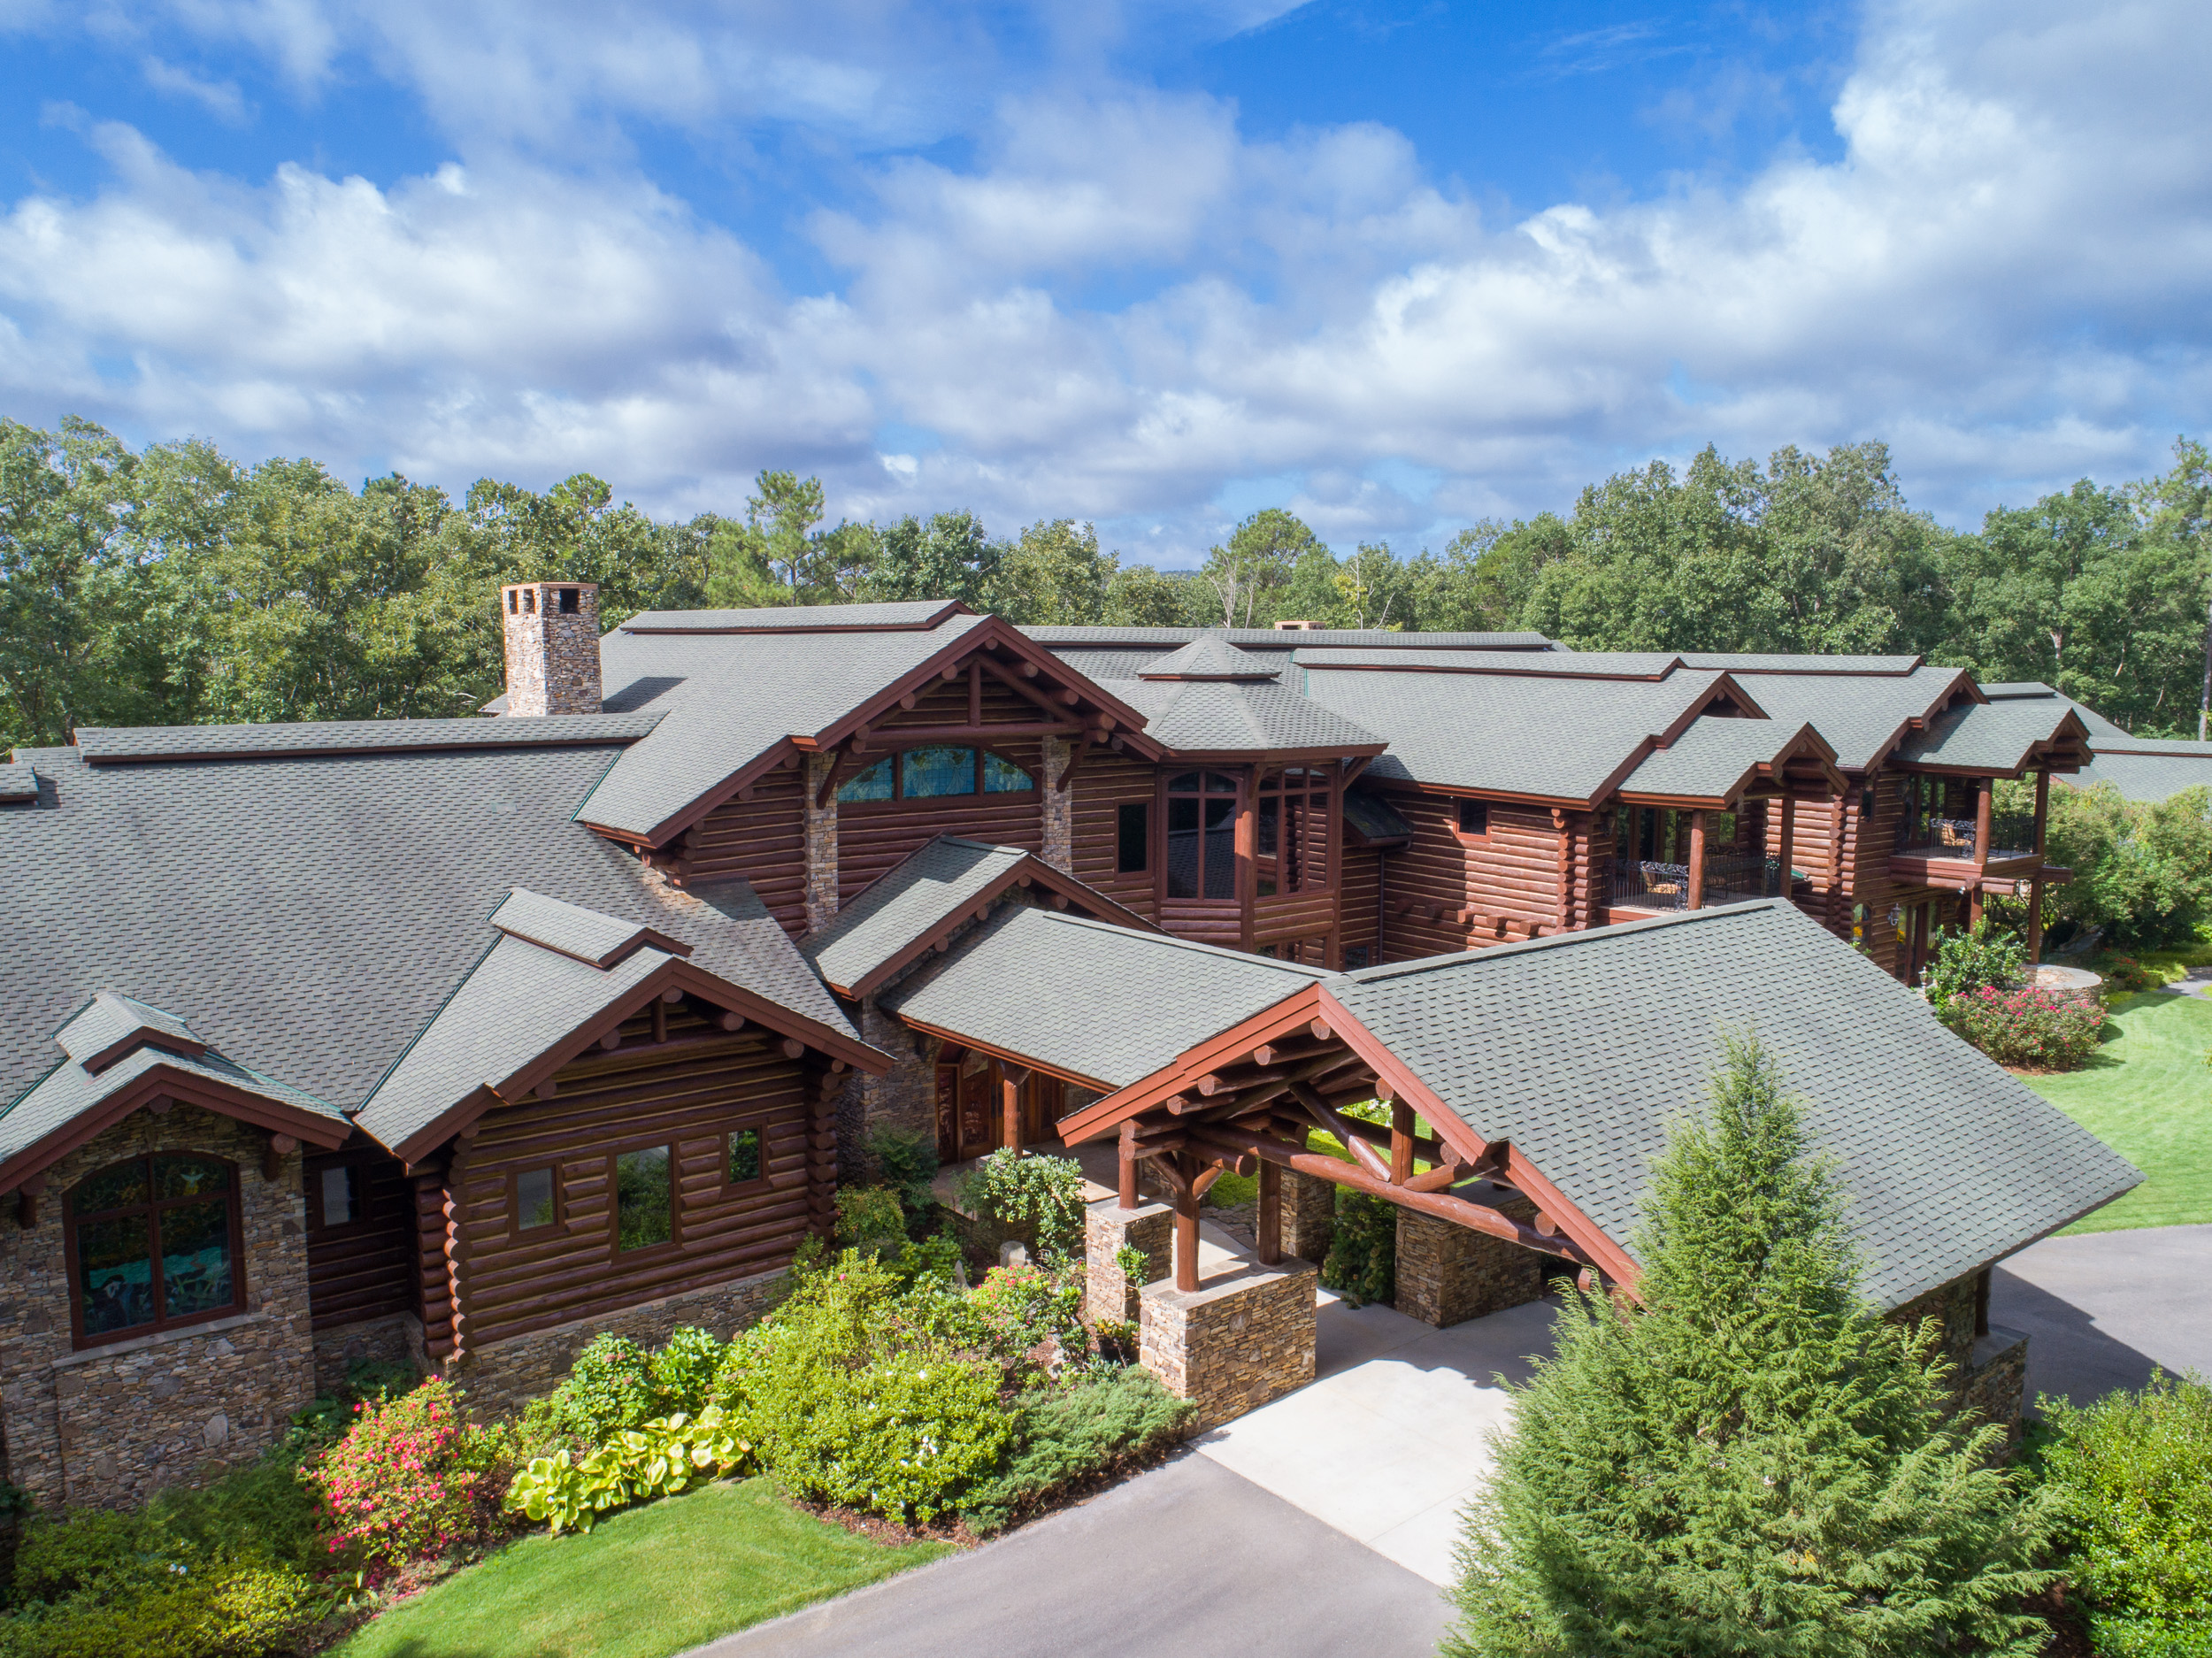 cullman-aerial-real-estate-photography-16.jpg